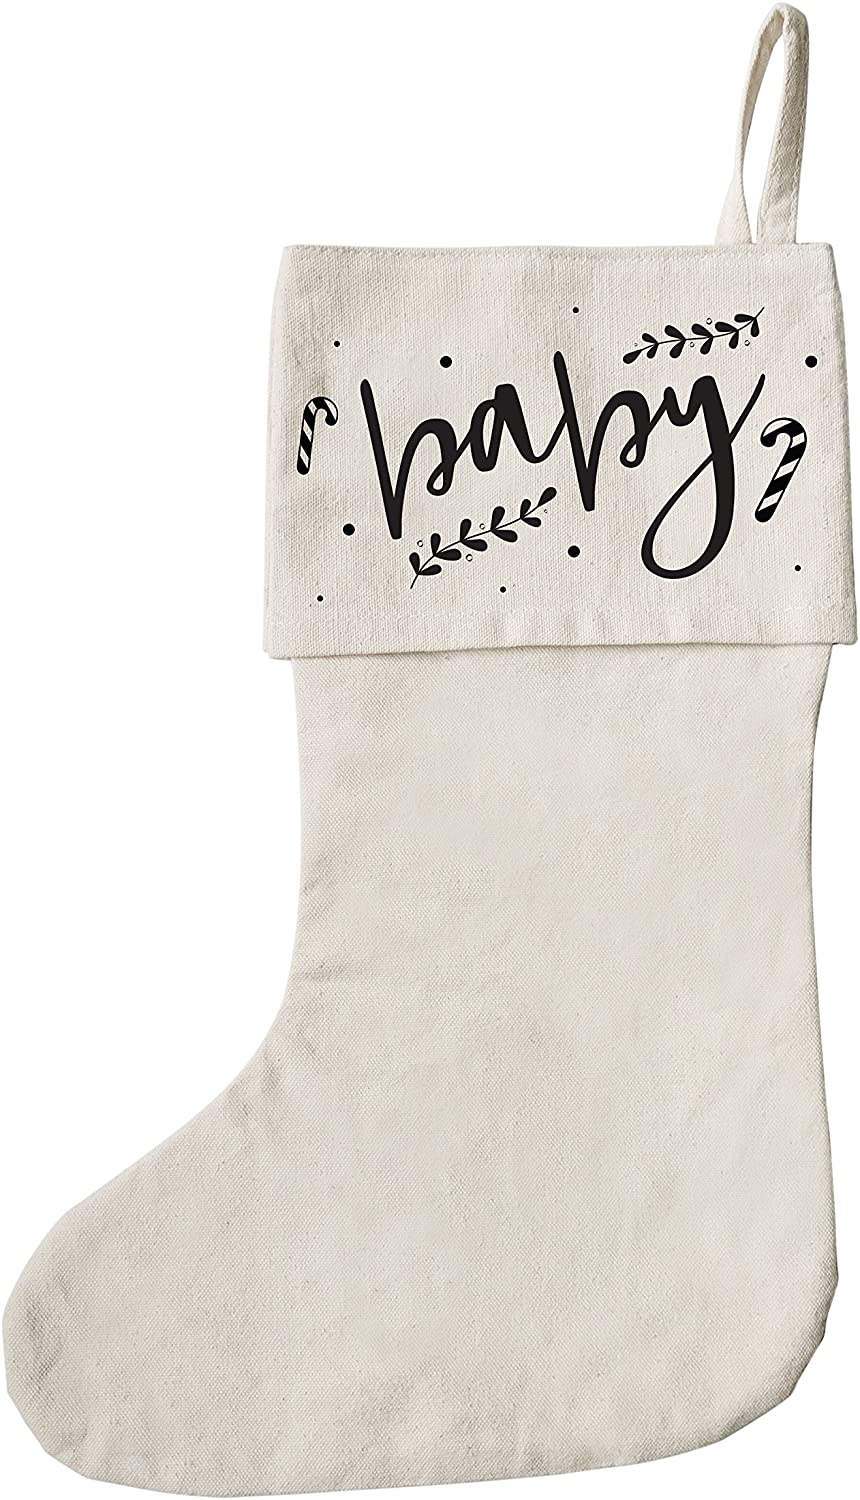 The Cotton & Canvas Co. Baby Christmas Stocking for Presents, Gift Bag, and Holiday Decorations